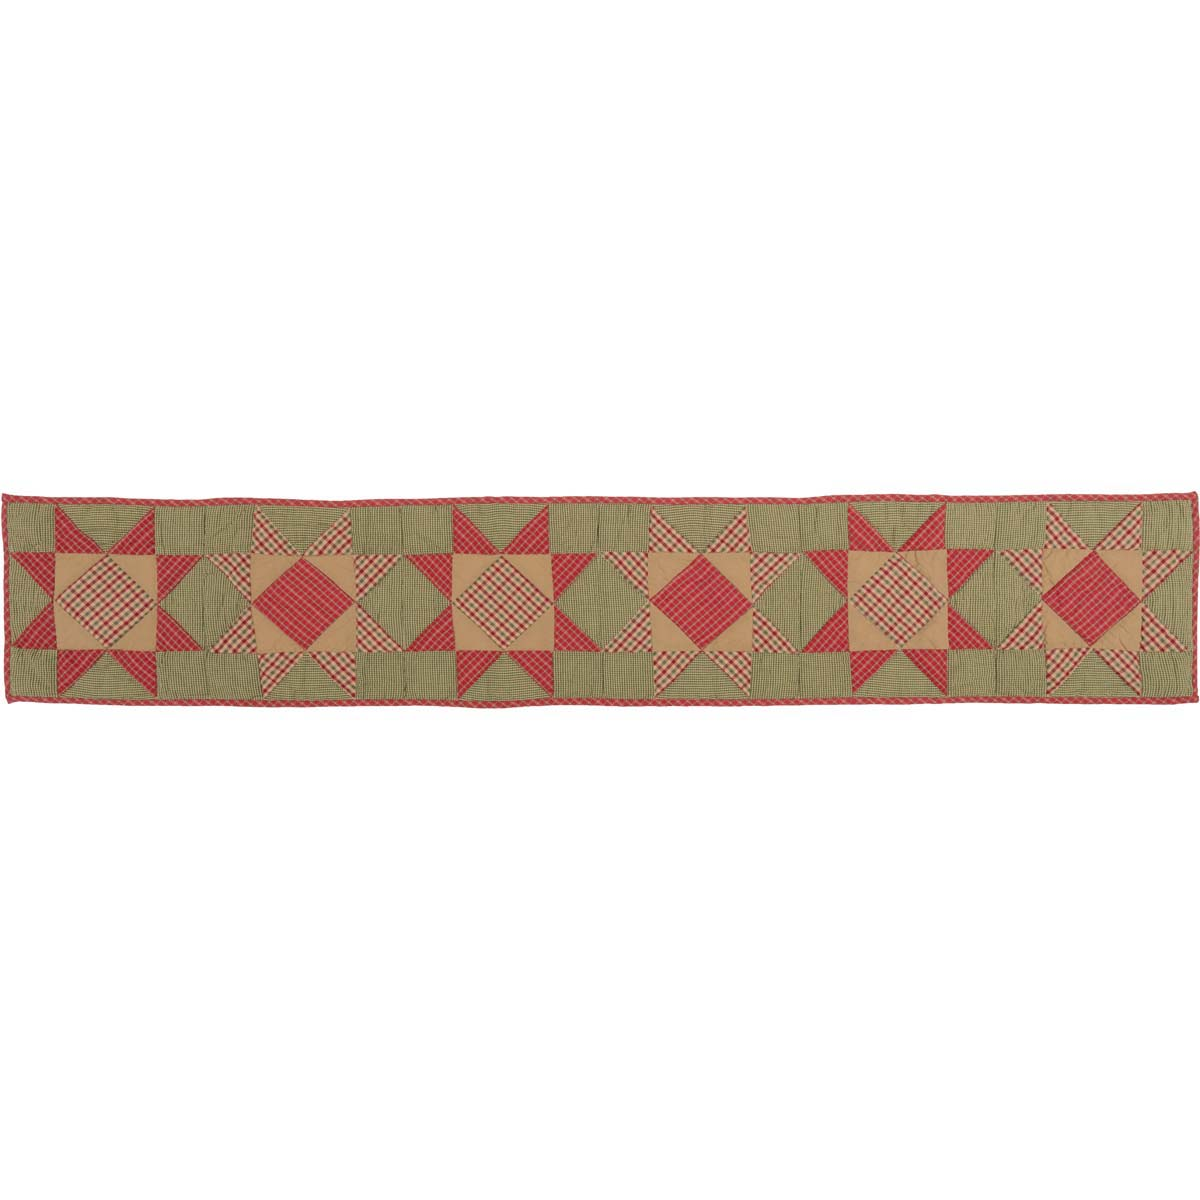 Dolly Star Quilted Runner 13x72